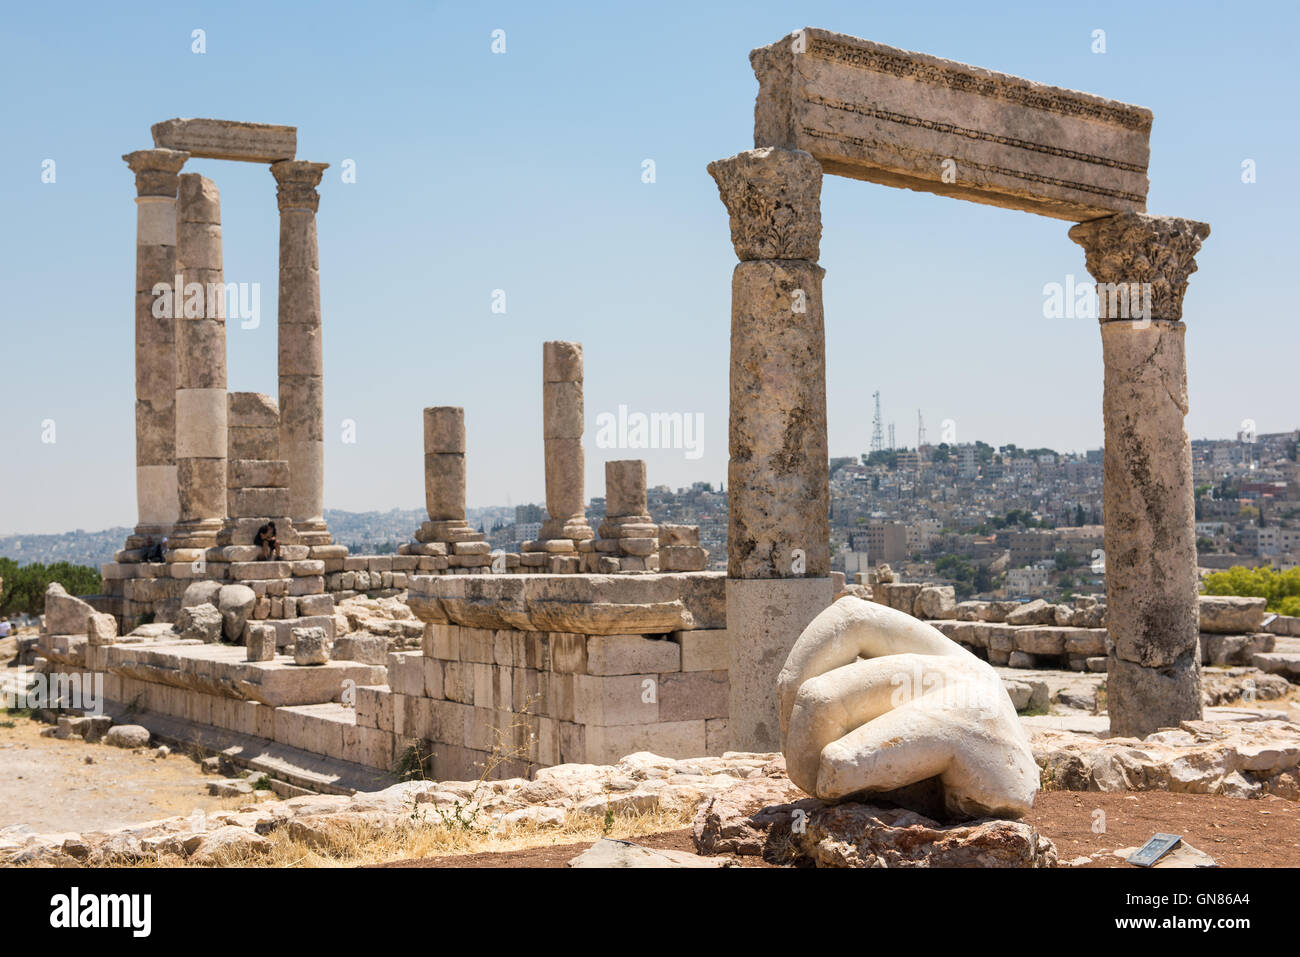 Ancient ruins of a roman temple in the Citadel of Amman. The hand of a statue in the foreground - Stock Image